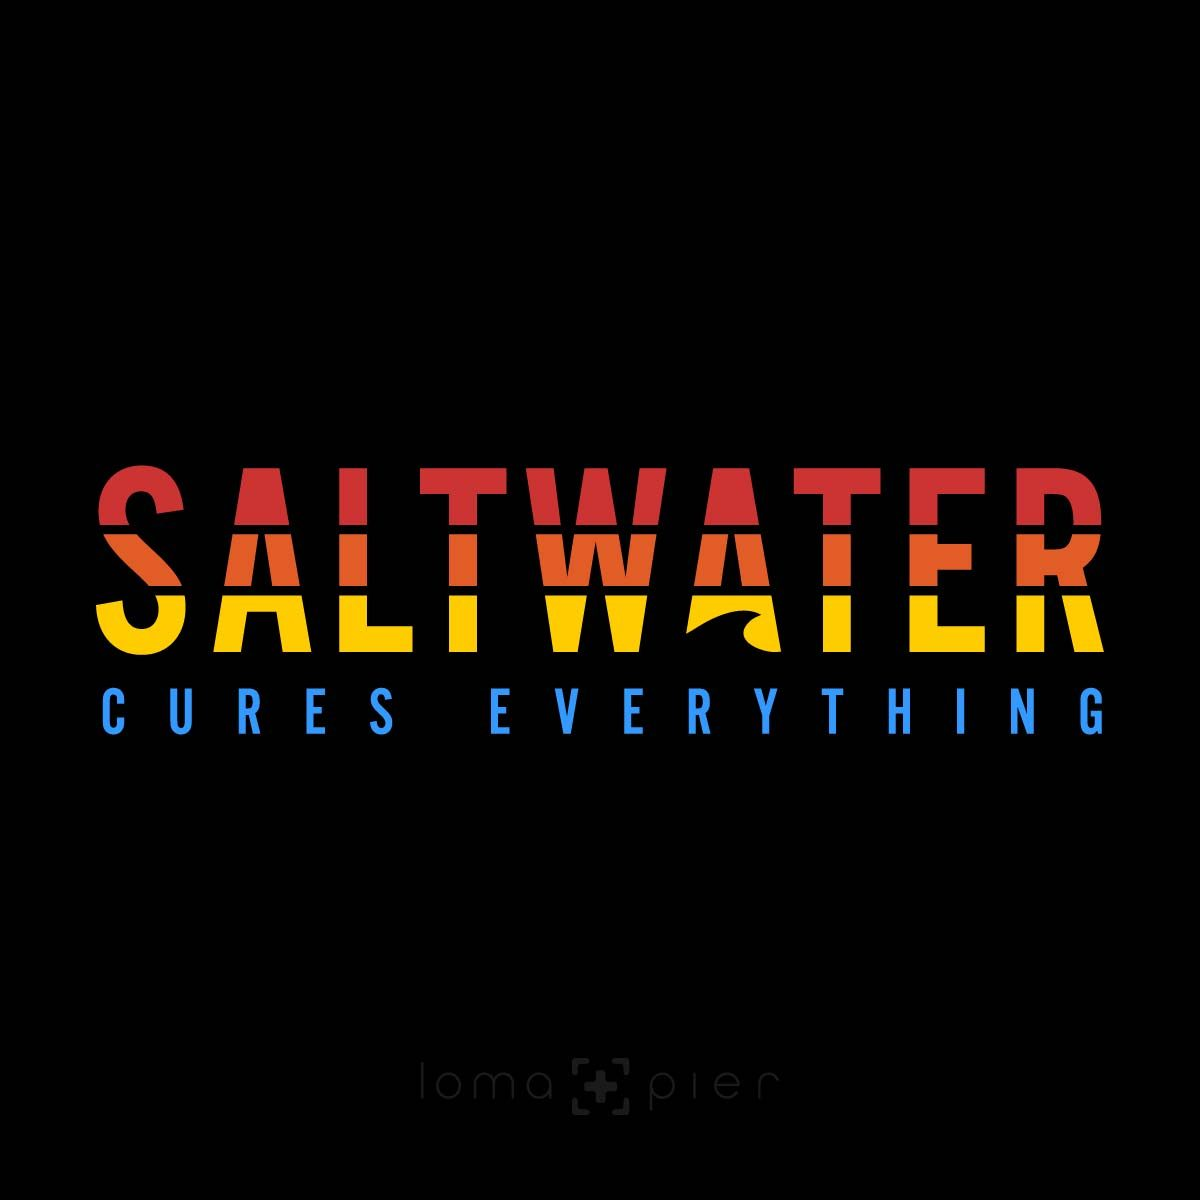 SALTWATER CURES EVERYTHING design by loma+pier hat store